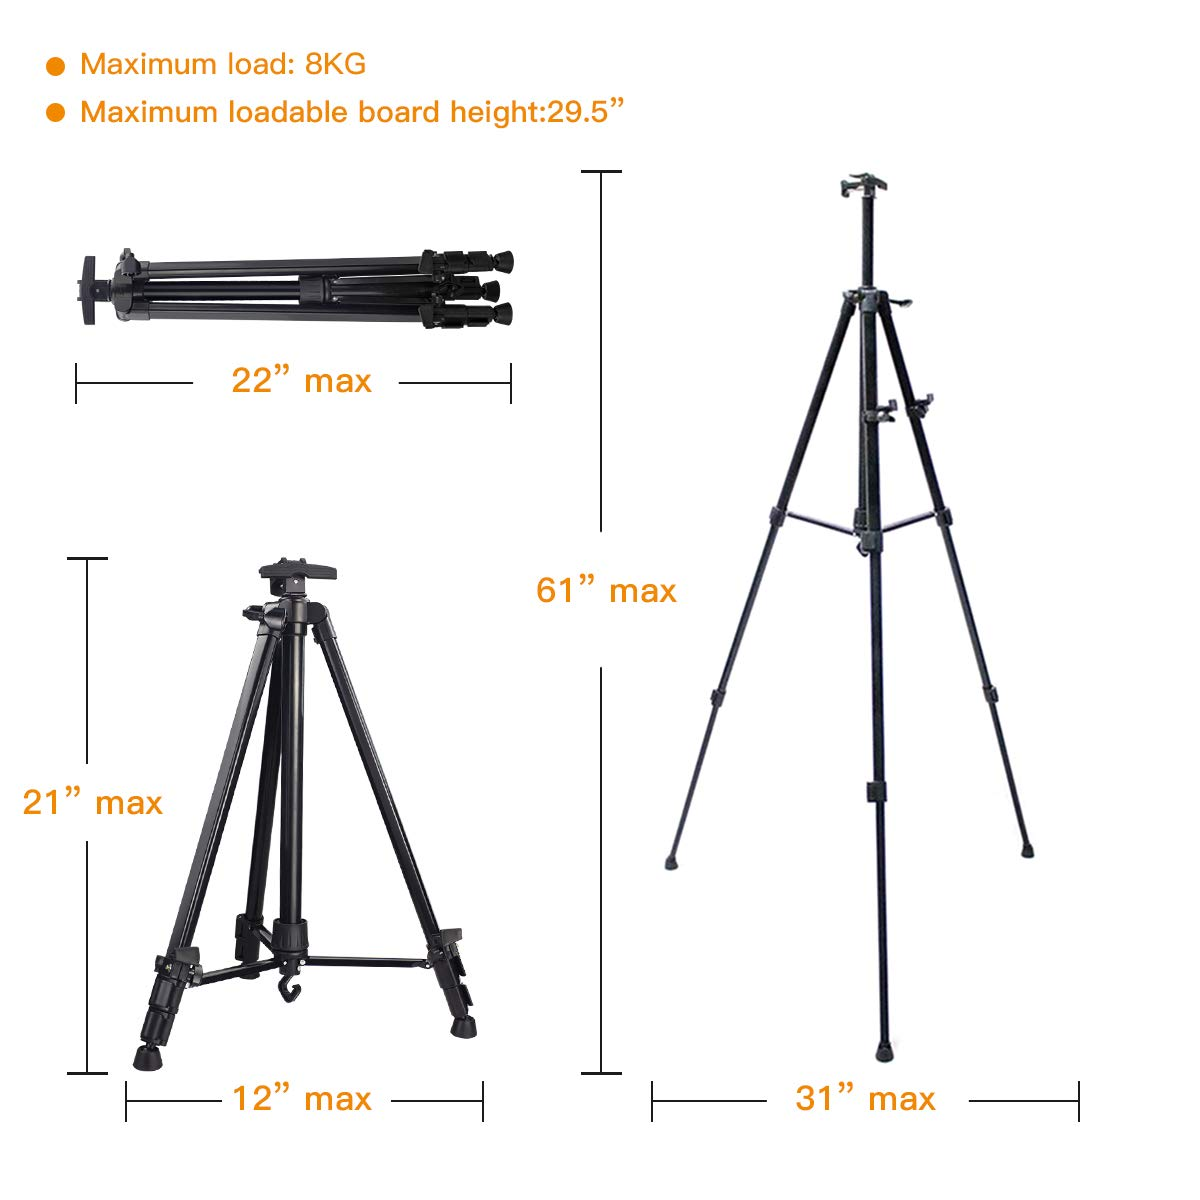 Carrying Bag Included Hosim Stand Bracket Tripod Display Stand Triangular Easel for LED Flashing Illuminated Lighted Writing Board Whiteboard Chalkboard Posters Paintings Wedding Birthday Party